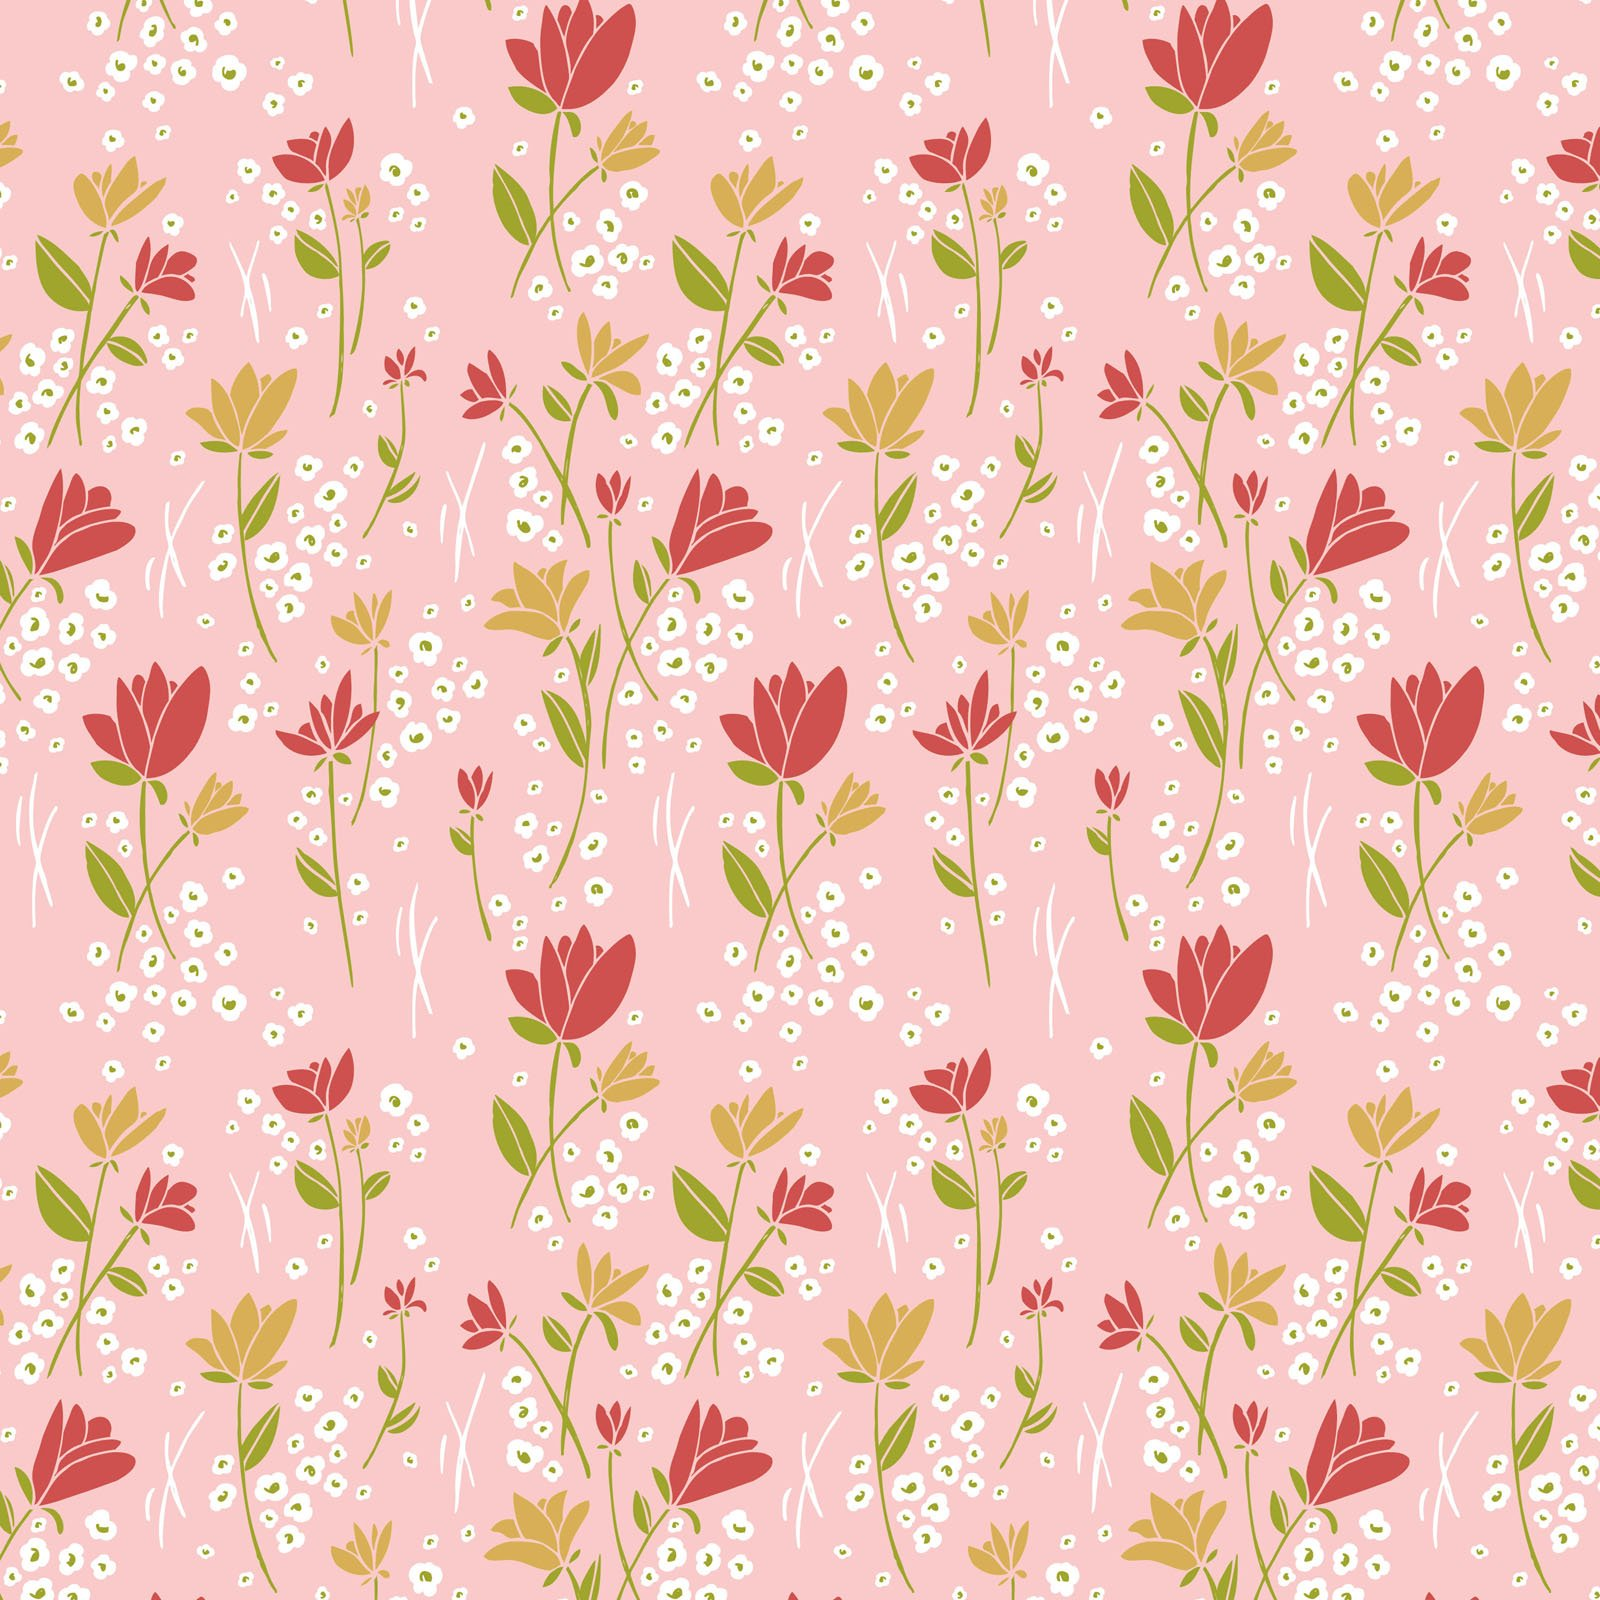 SOUH-4425 P - SOUTHERN HOSPITALITY BY HANG TIGHT STUDIO SKYLARK PINK - AVAILABLE TO ORDER